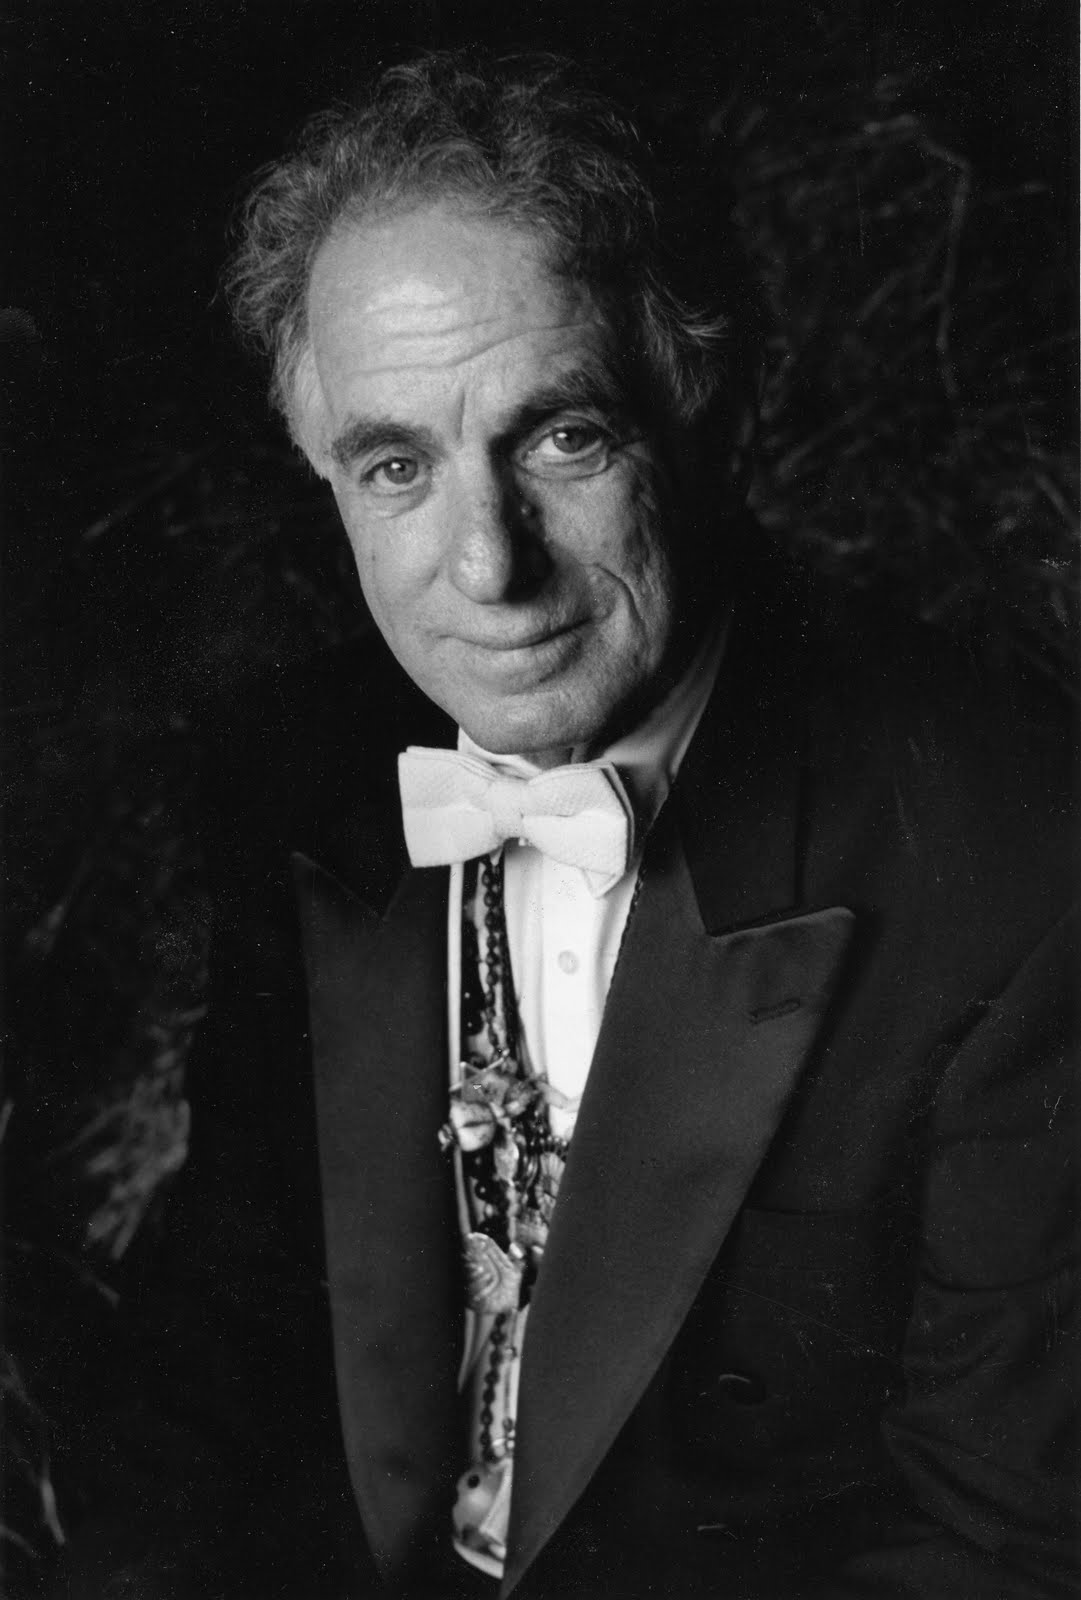 Black & White portrait of David Amram